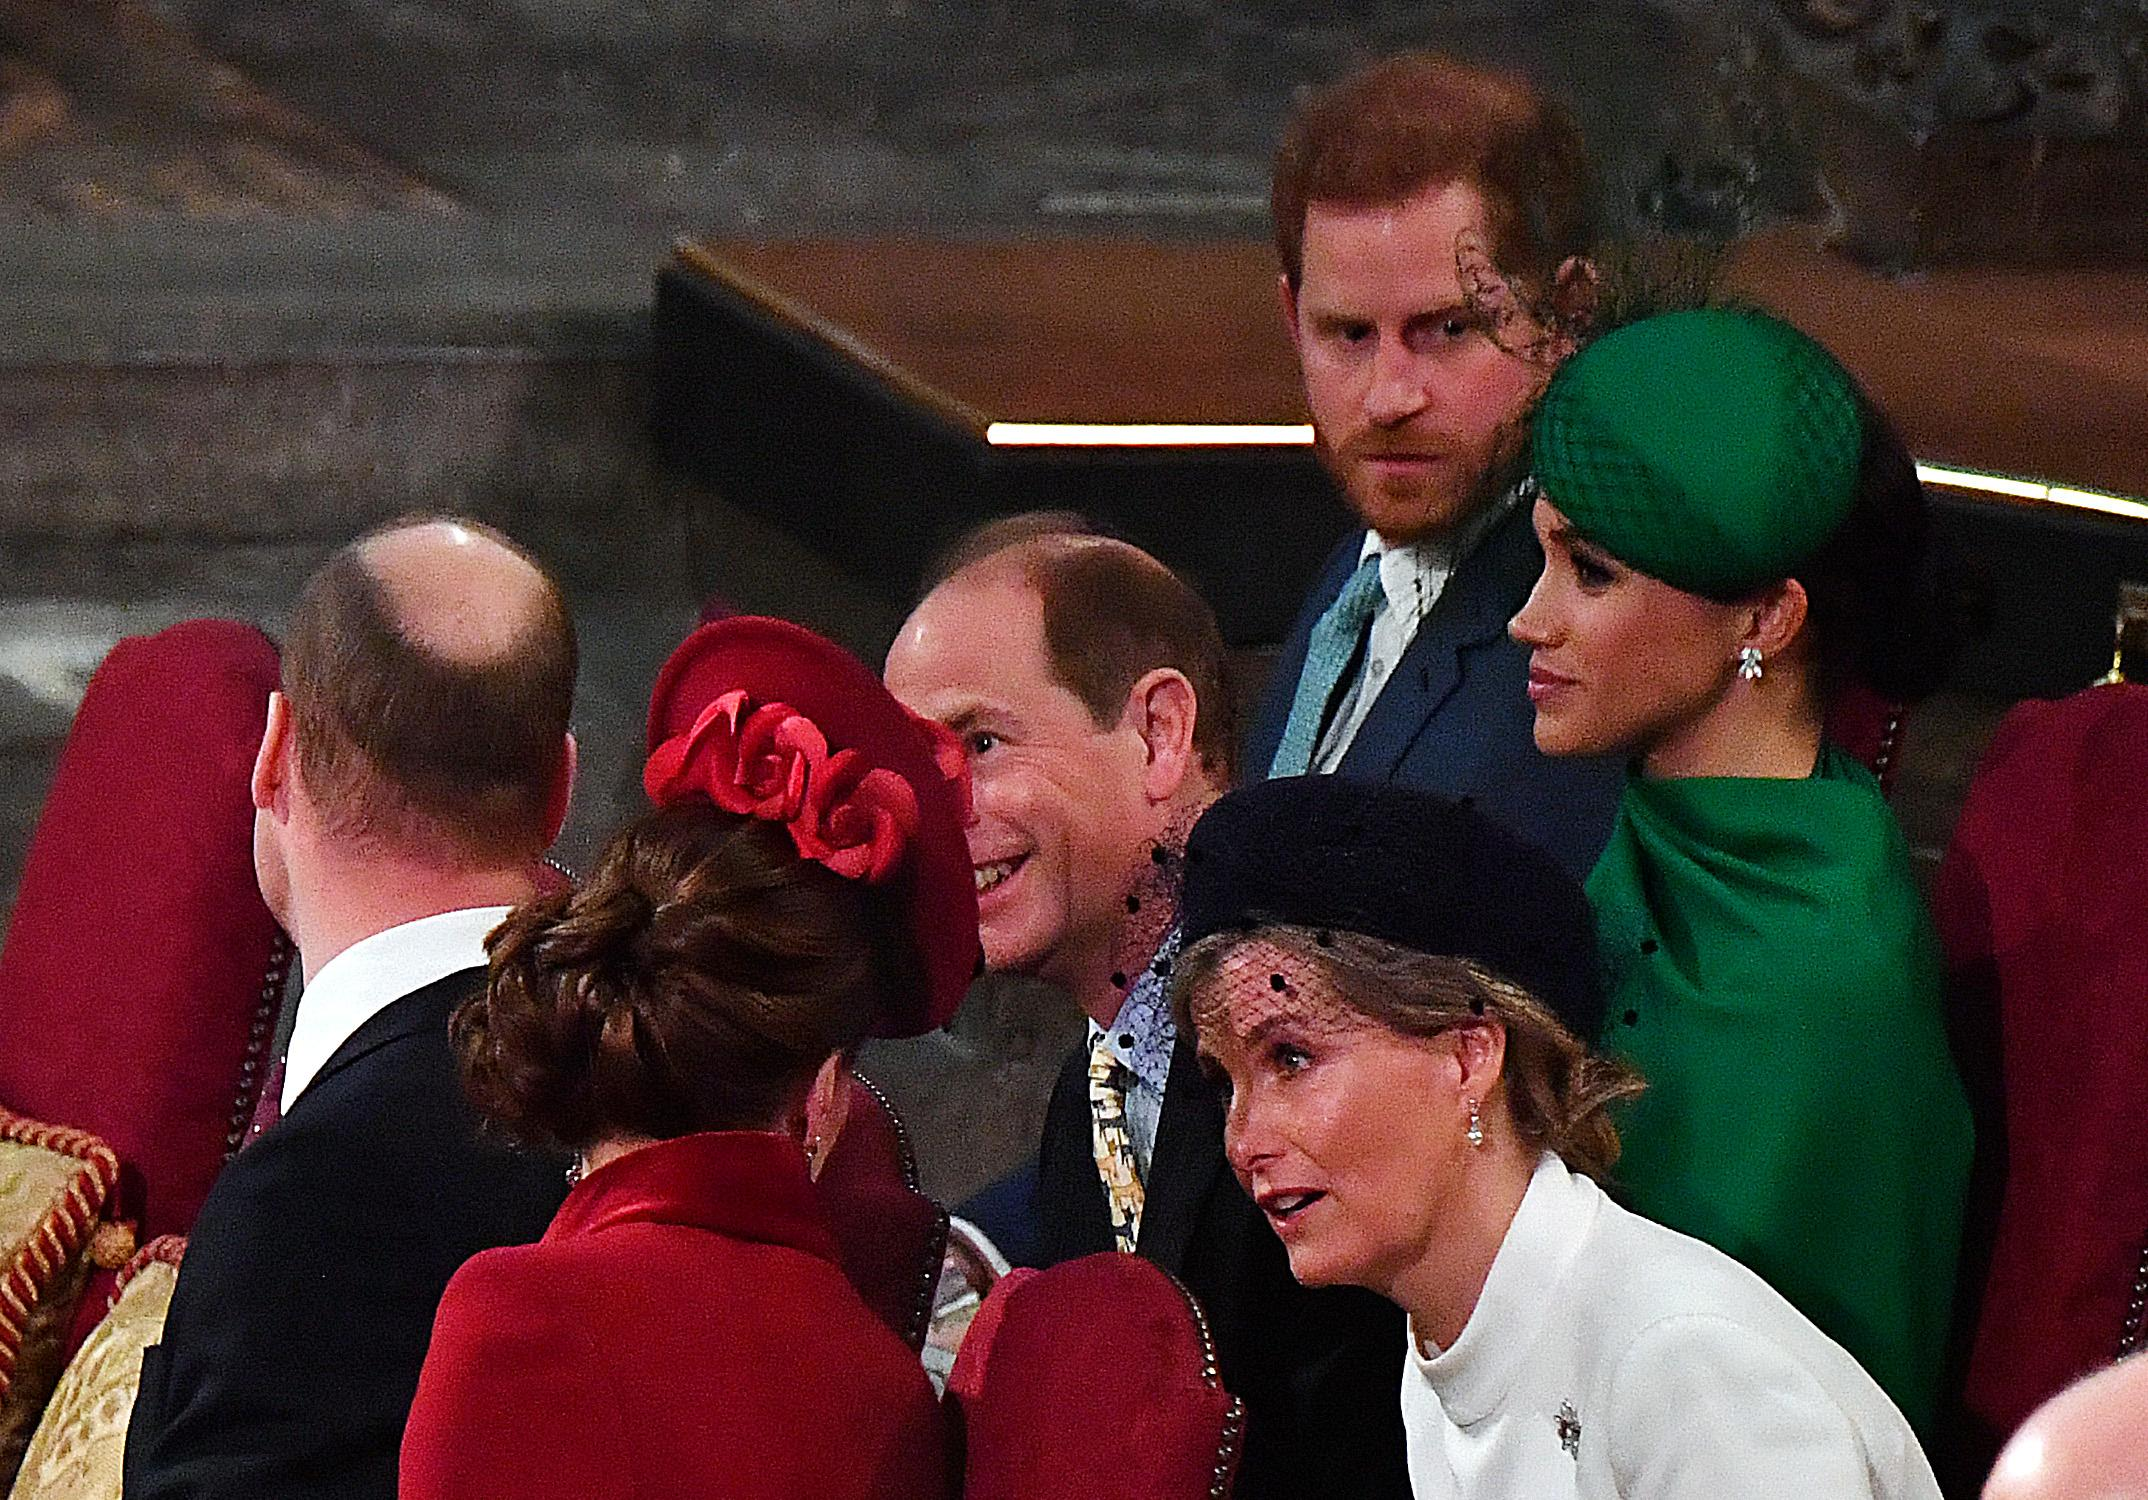 Britain's Prince William, Duke of Cambridge (L) and Britain's Catherine, Duchess of Cambridge (2nd L) chat with Britain's Prince Edward, Earl of Wessex (3rd L) and Britain's Sophie, Countess of Wessex (3rd R) as Britain's Prince Harry, Duke of Sussex (2nd R) and Meghan, Duchess of Sussex (R) sit behind, inside Westminster Abbey as they attend the annual Commonwealth Service in London on March 9, 2020. - Britain's Queen Elizabeth II has been the Head of the Commonwealth throughout her reign. Organised by the Royal Commonwealth Society, the Service is the largest annual inter-faith gathering in the United Kingdom. (Photo by Phil Harris / POOL / AFP) (Photo by PHIL HARRIS/POOL/AFP via Getty Images)